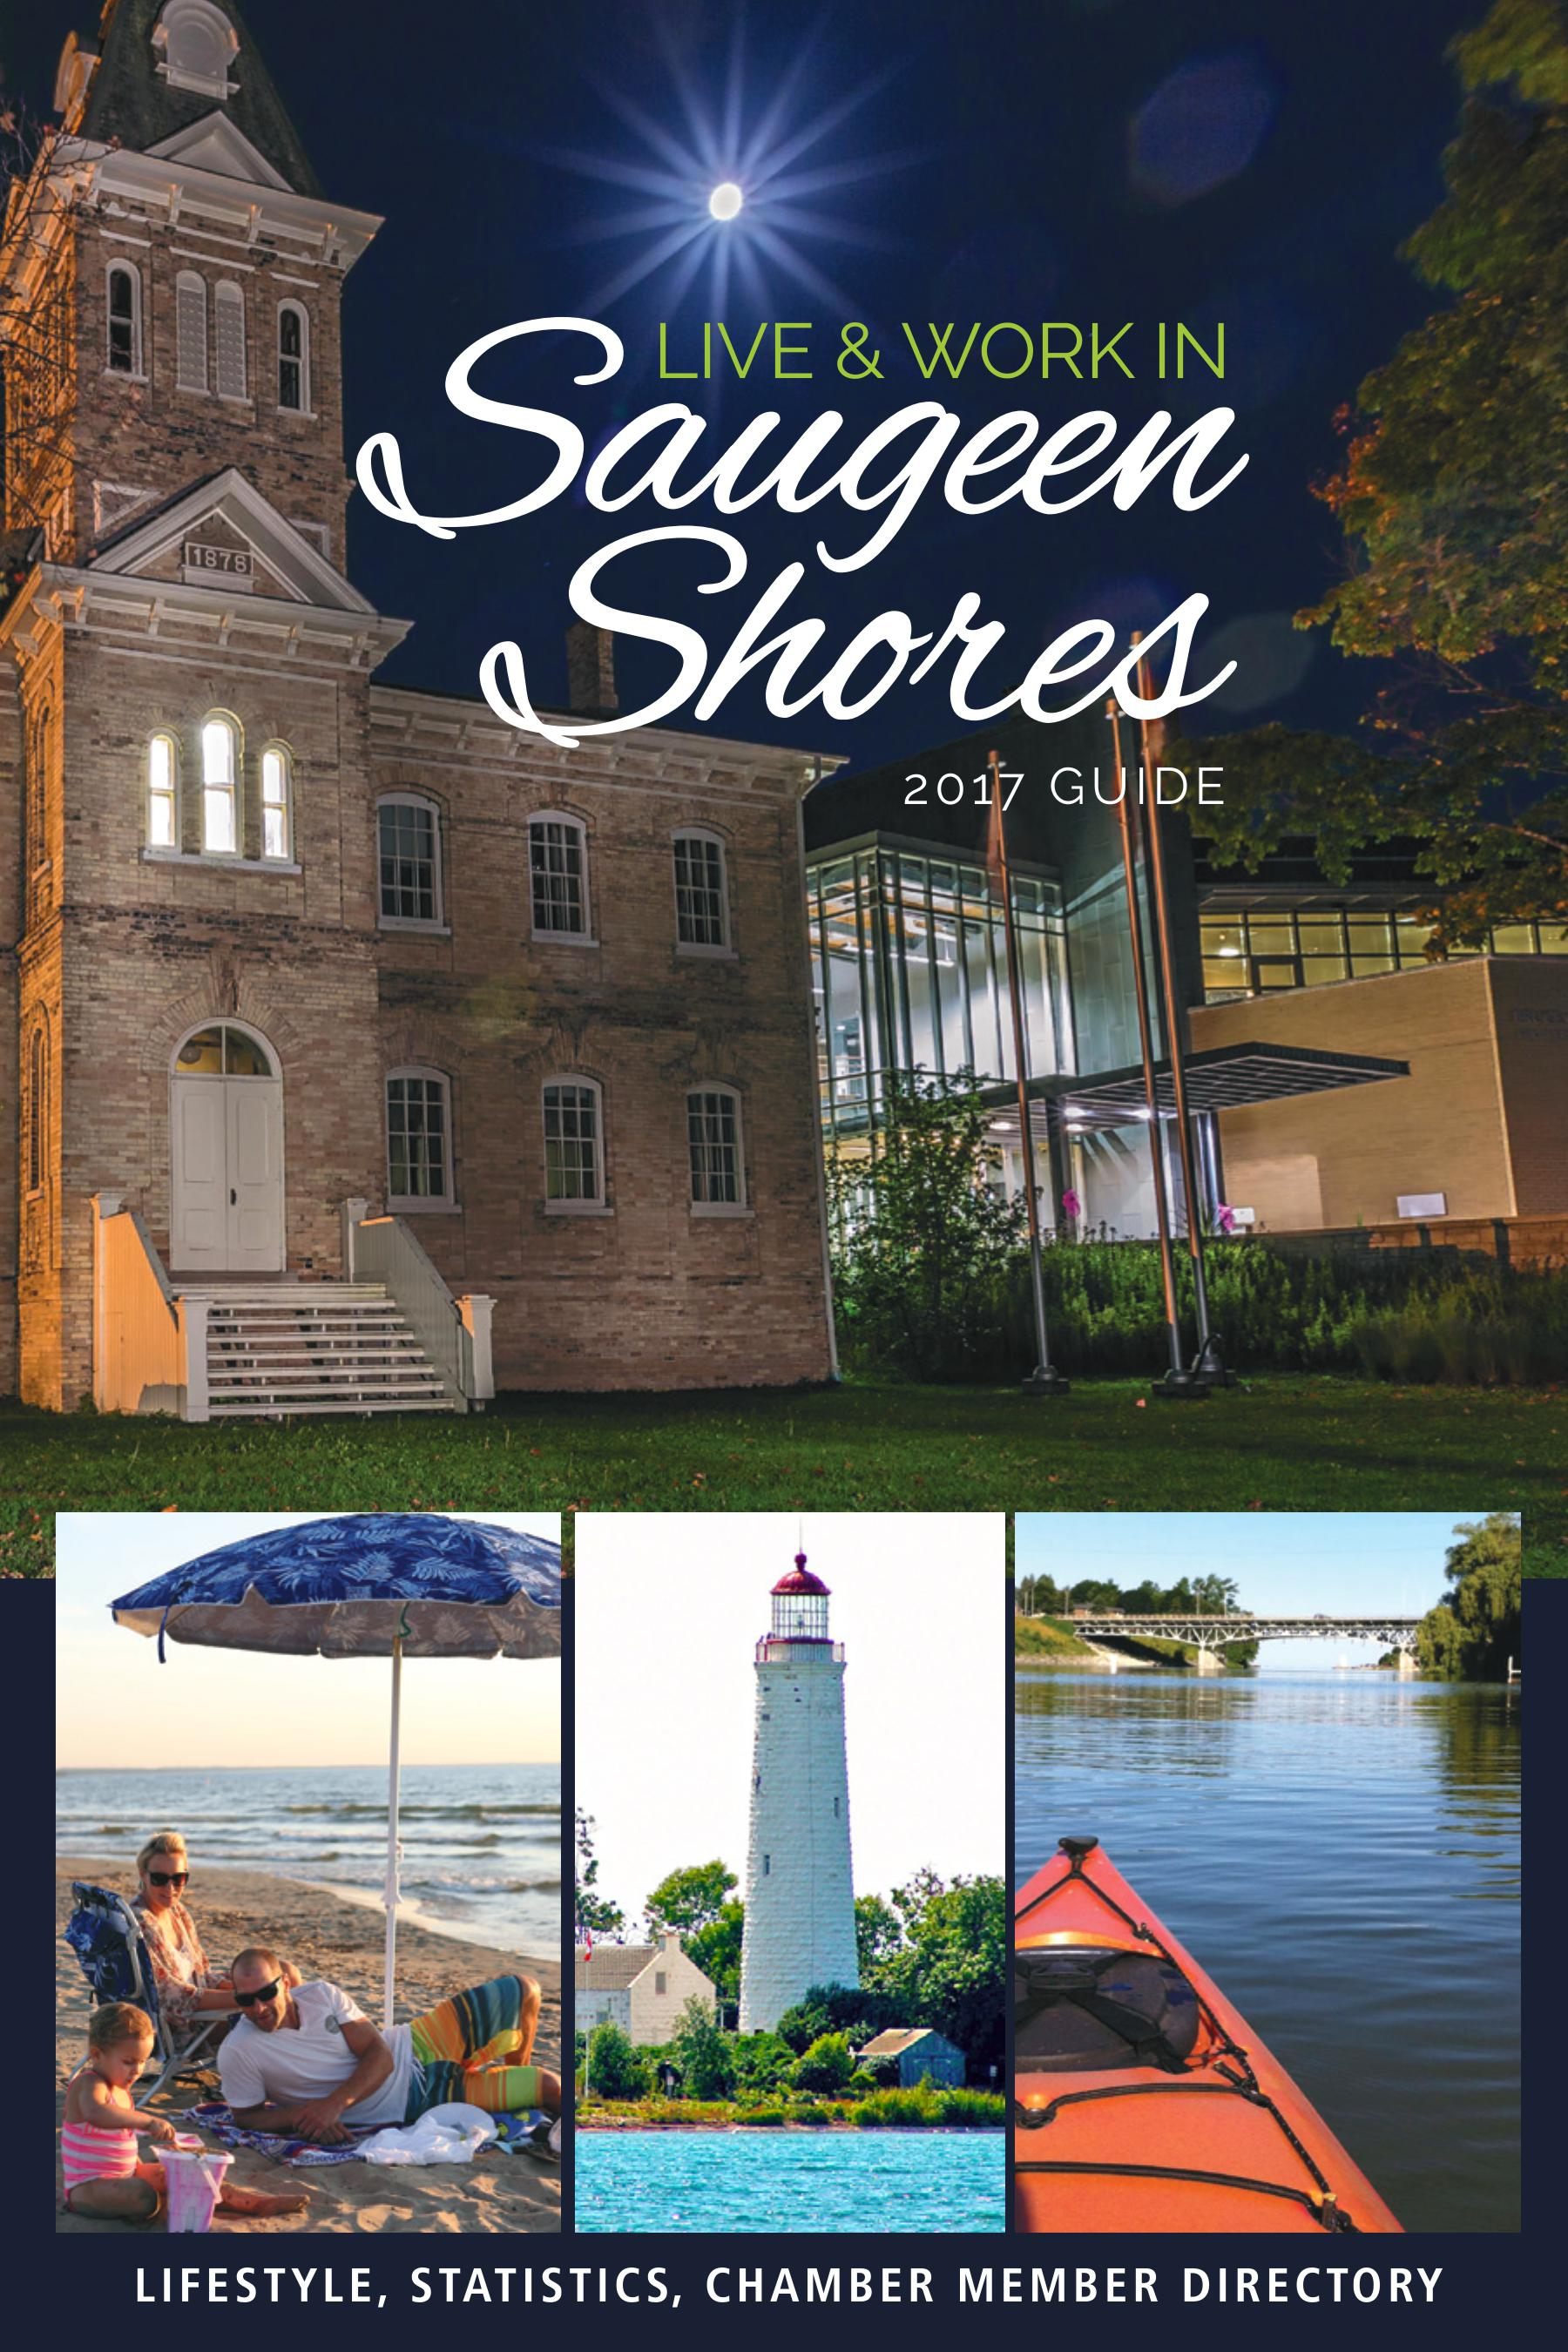 Live & Work in Saugeen Shores